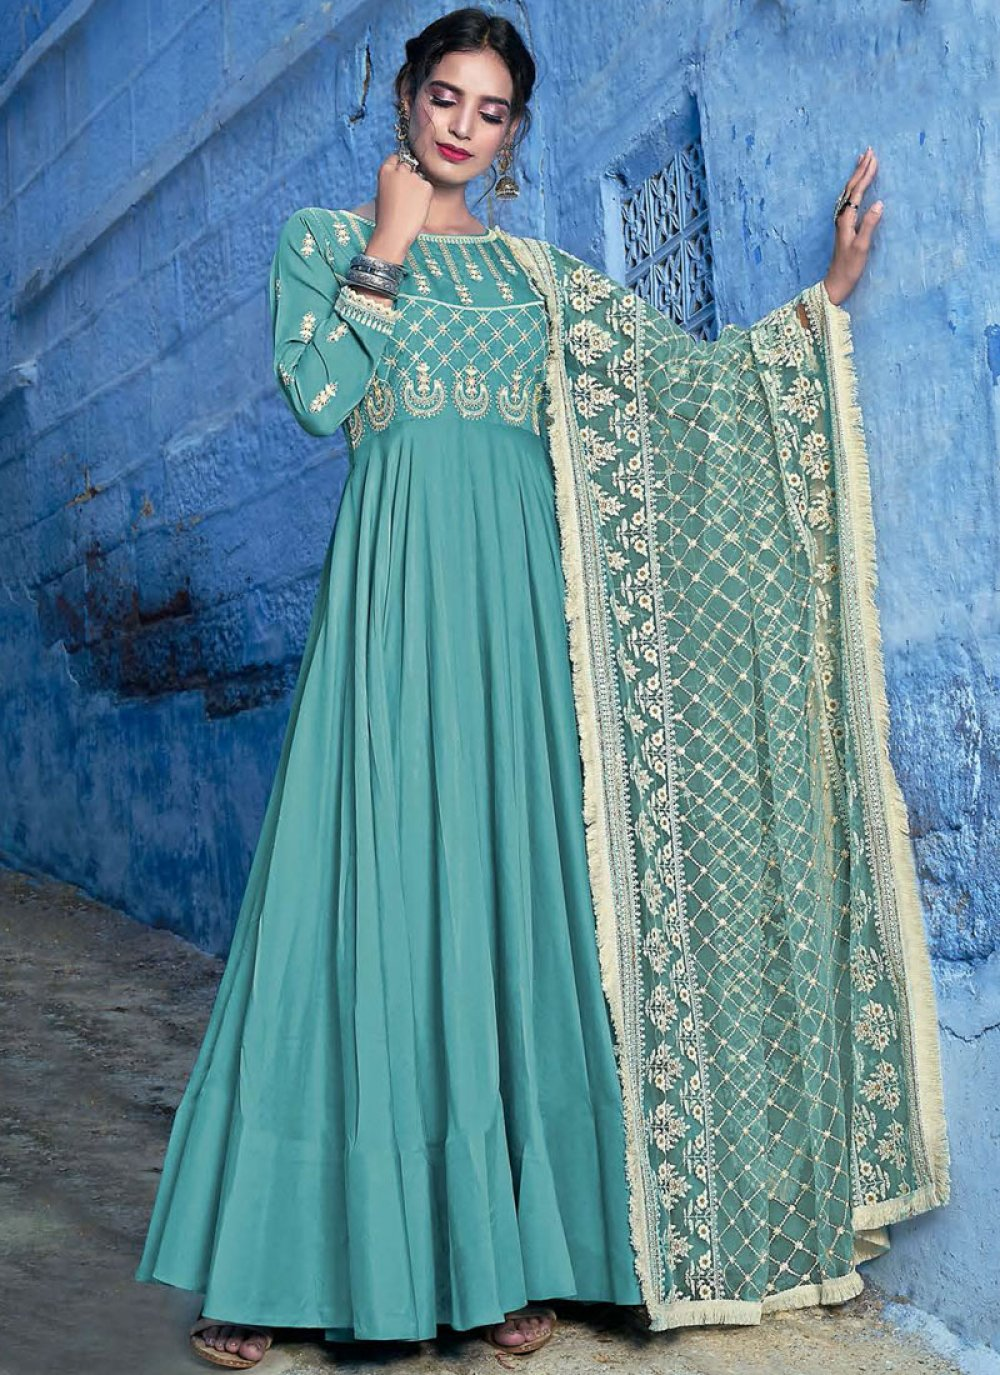 Aqua Blue Muslin Anarkali Suit